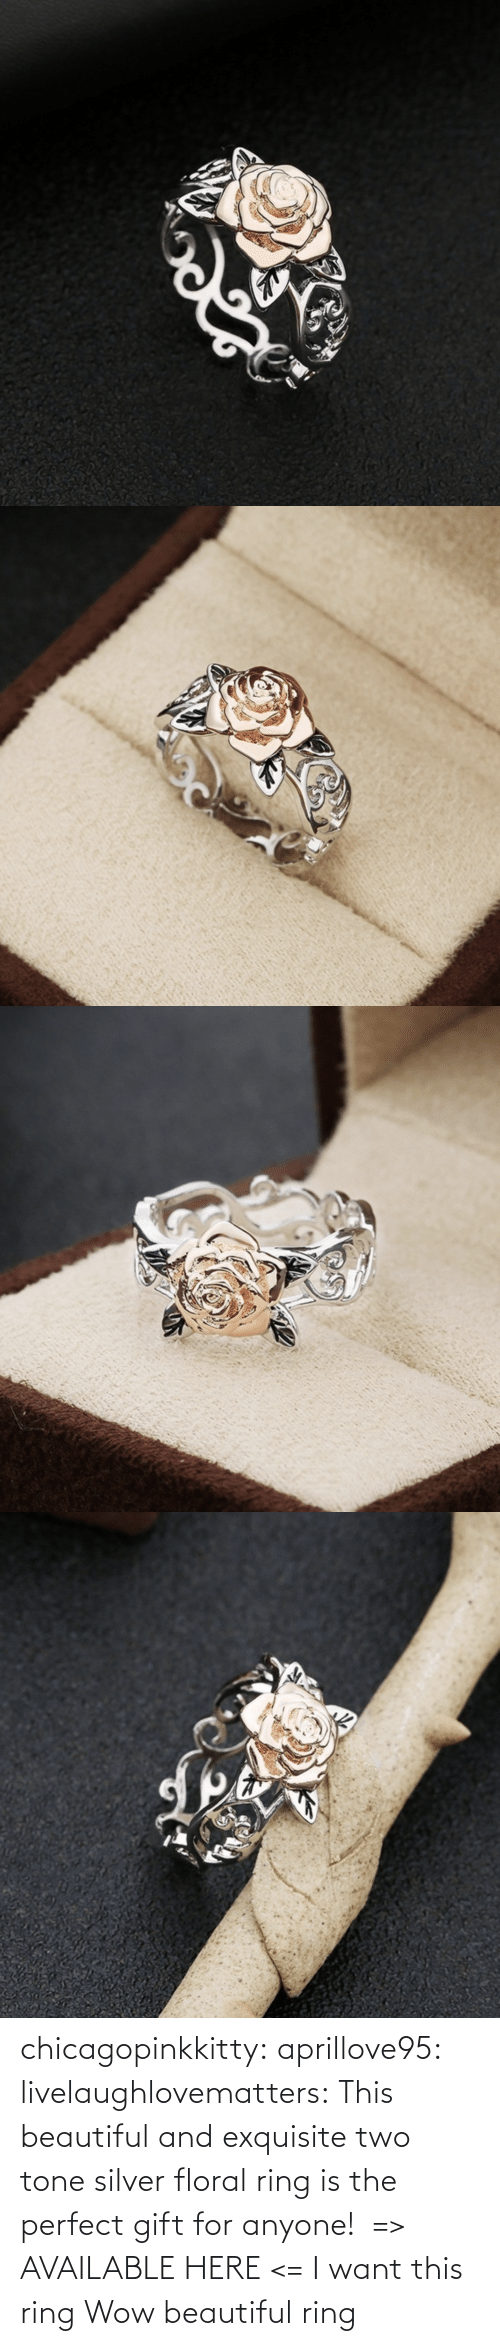 i want this: chicagopinkkitty: aprillove95:  livelaughlovematters:  This beautiful and exquisite two tone silver floral ring is the perfect gift for anyone!  => AVAILABLE HERE <=    I want this ring     Wow beautiful ring